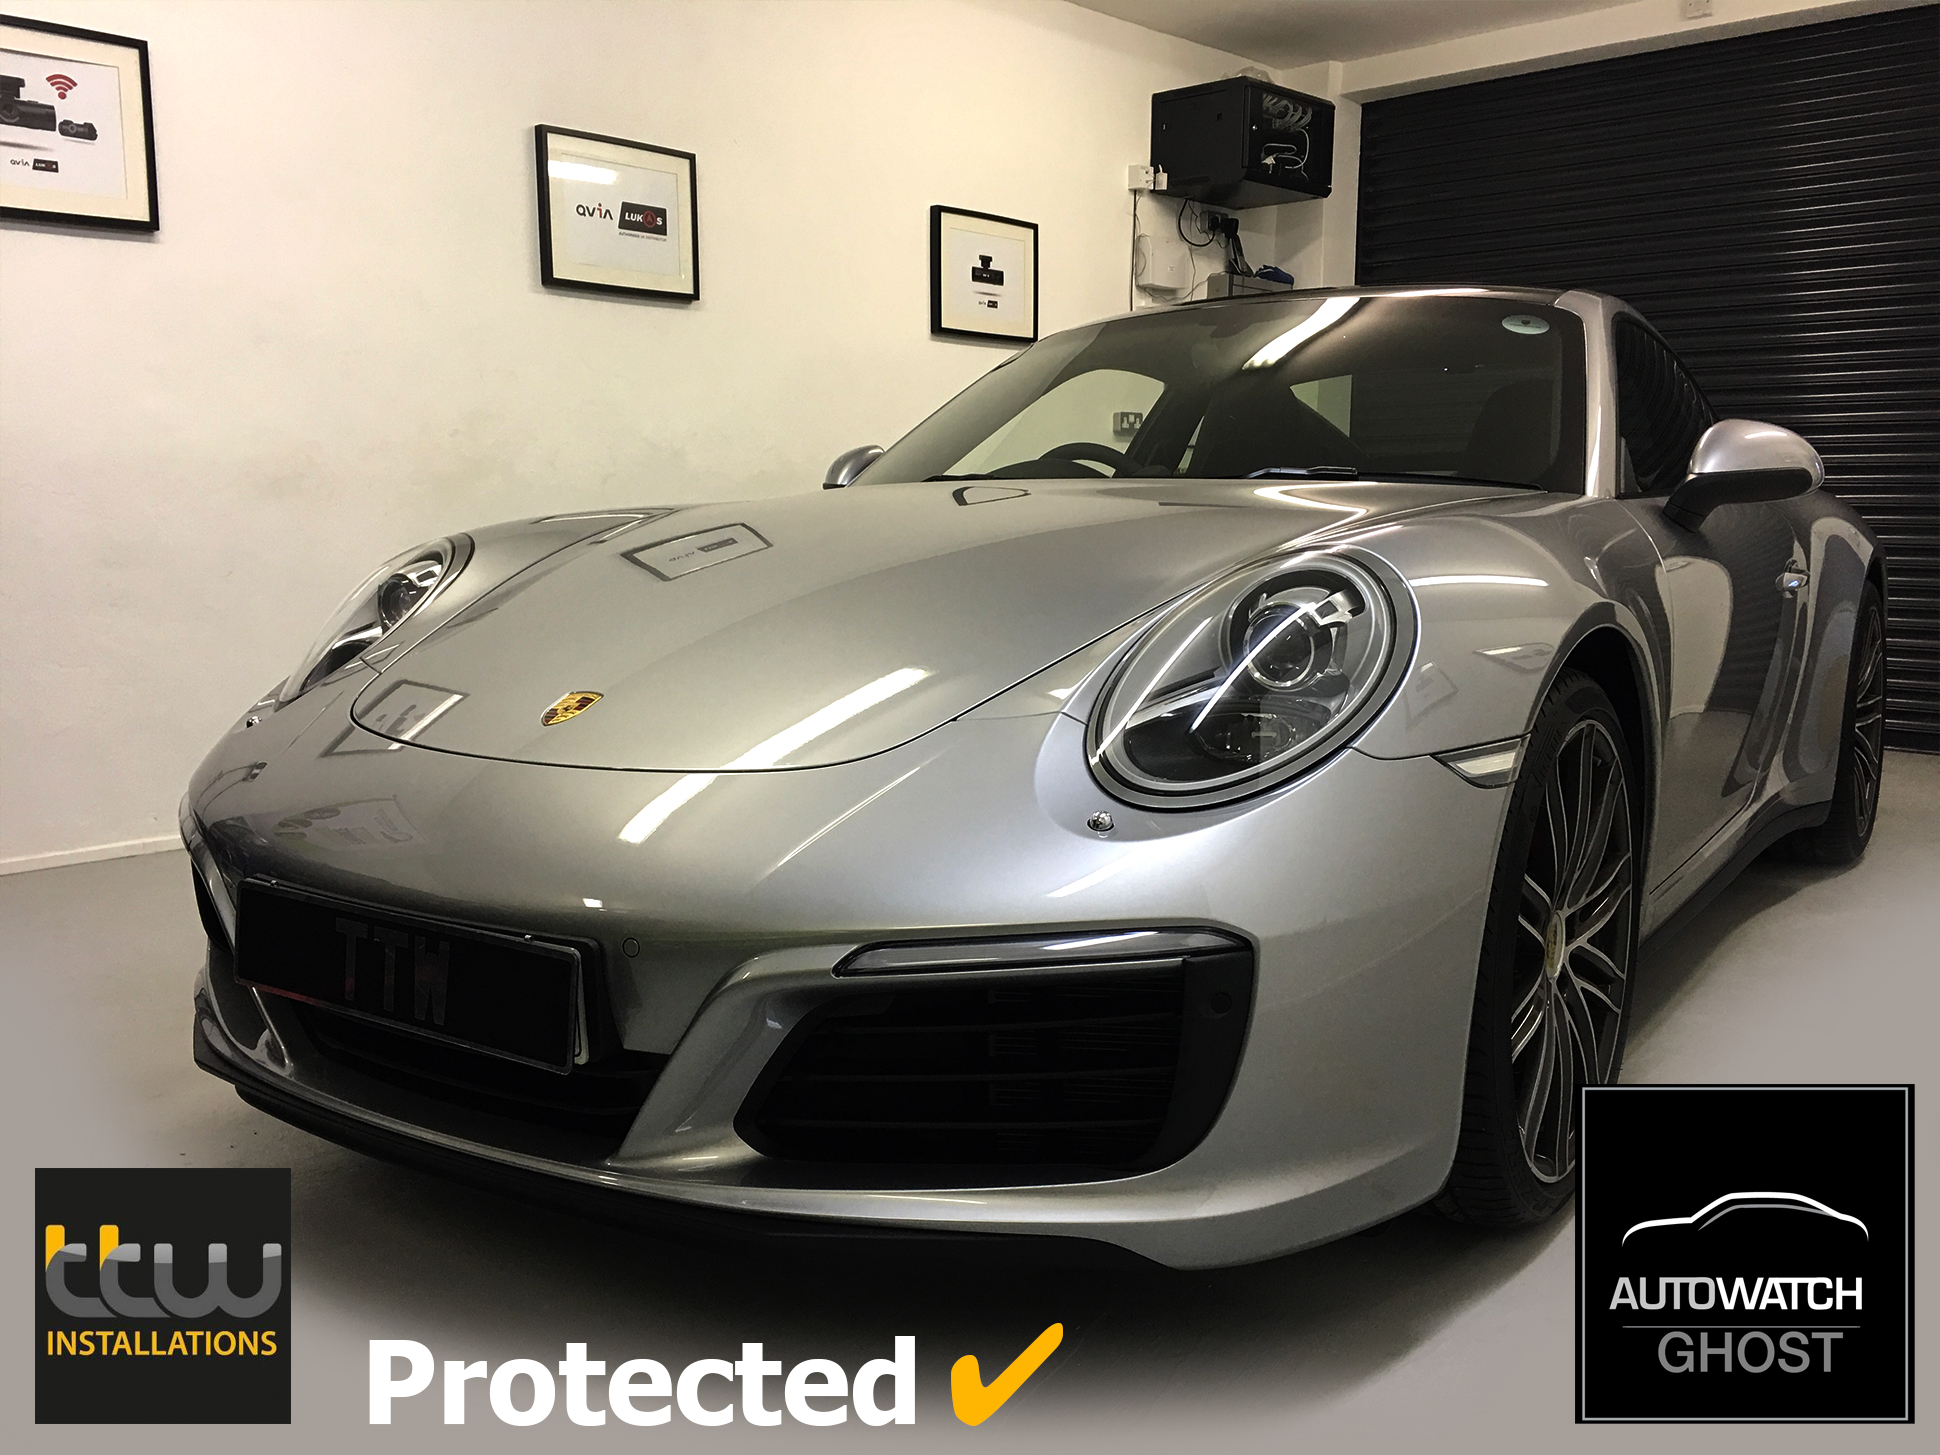 Porsche 991 Autowatch Ghost 2 protected By TTW Installations